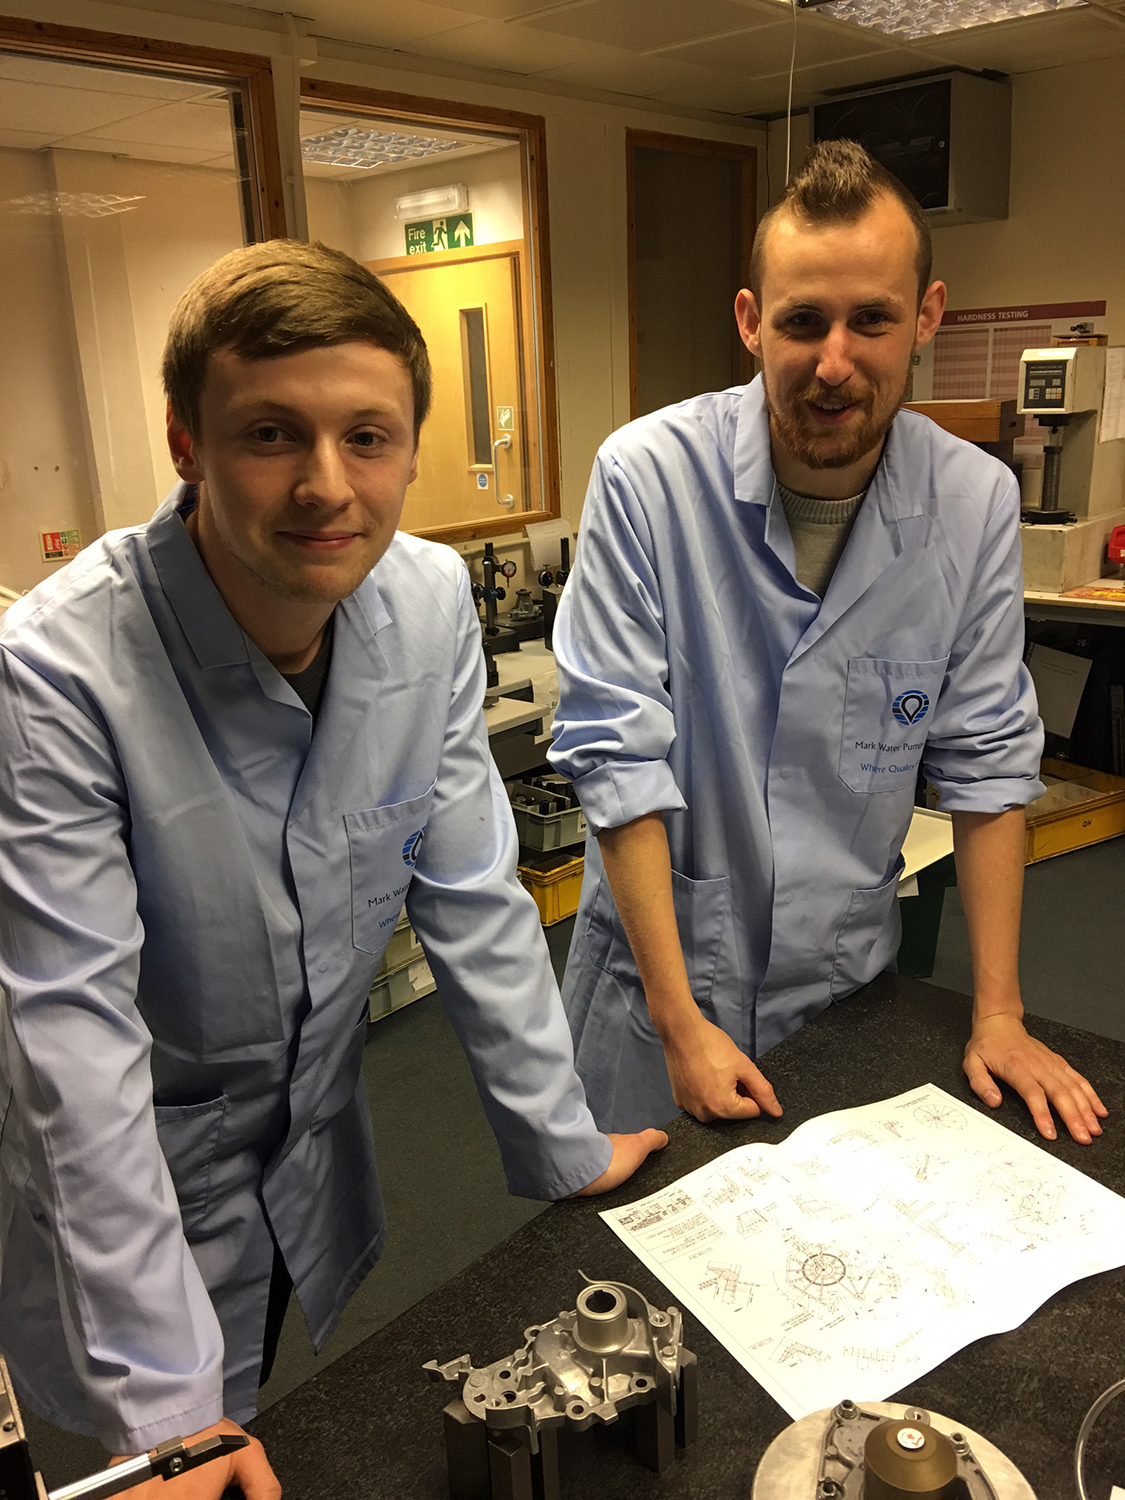 Technical Apprenticeships - Doing the right thing